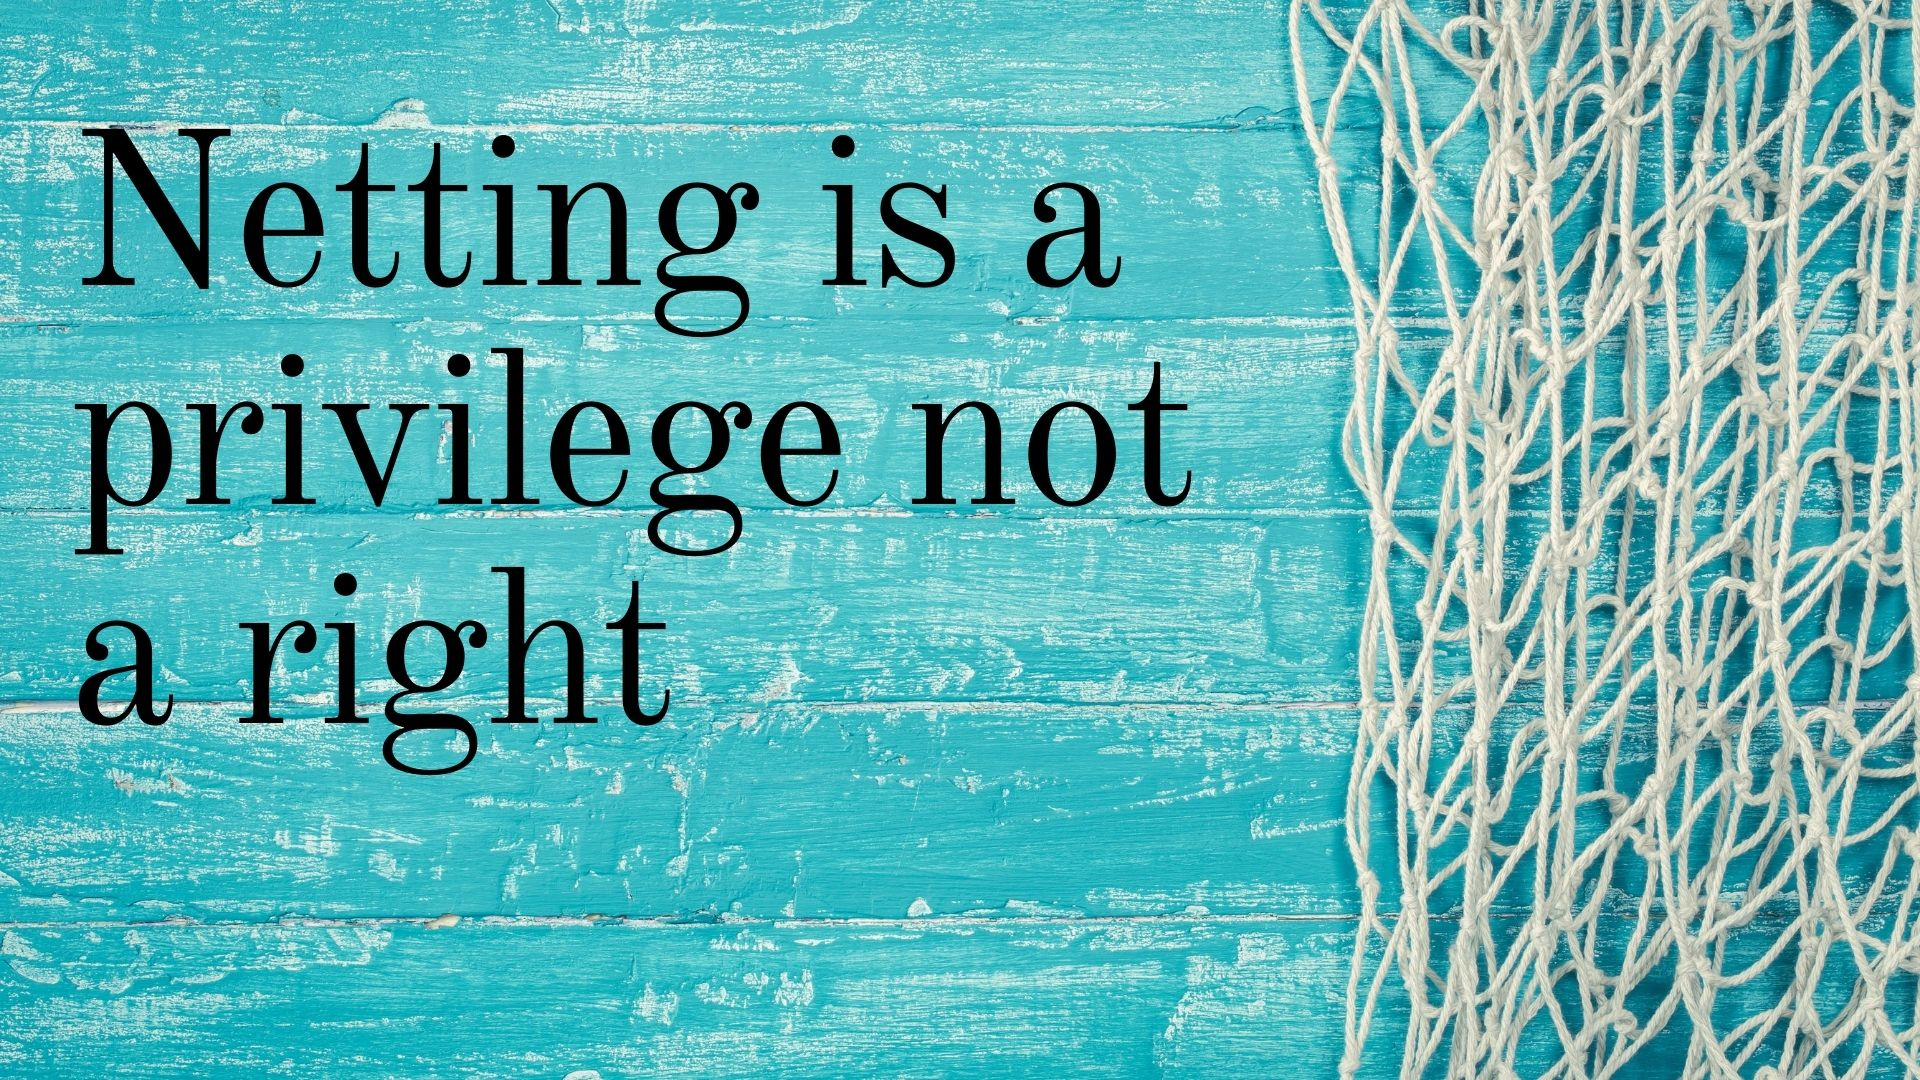 Netting is a privilege not a right 11